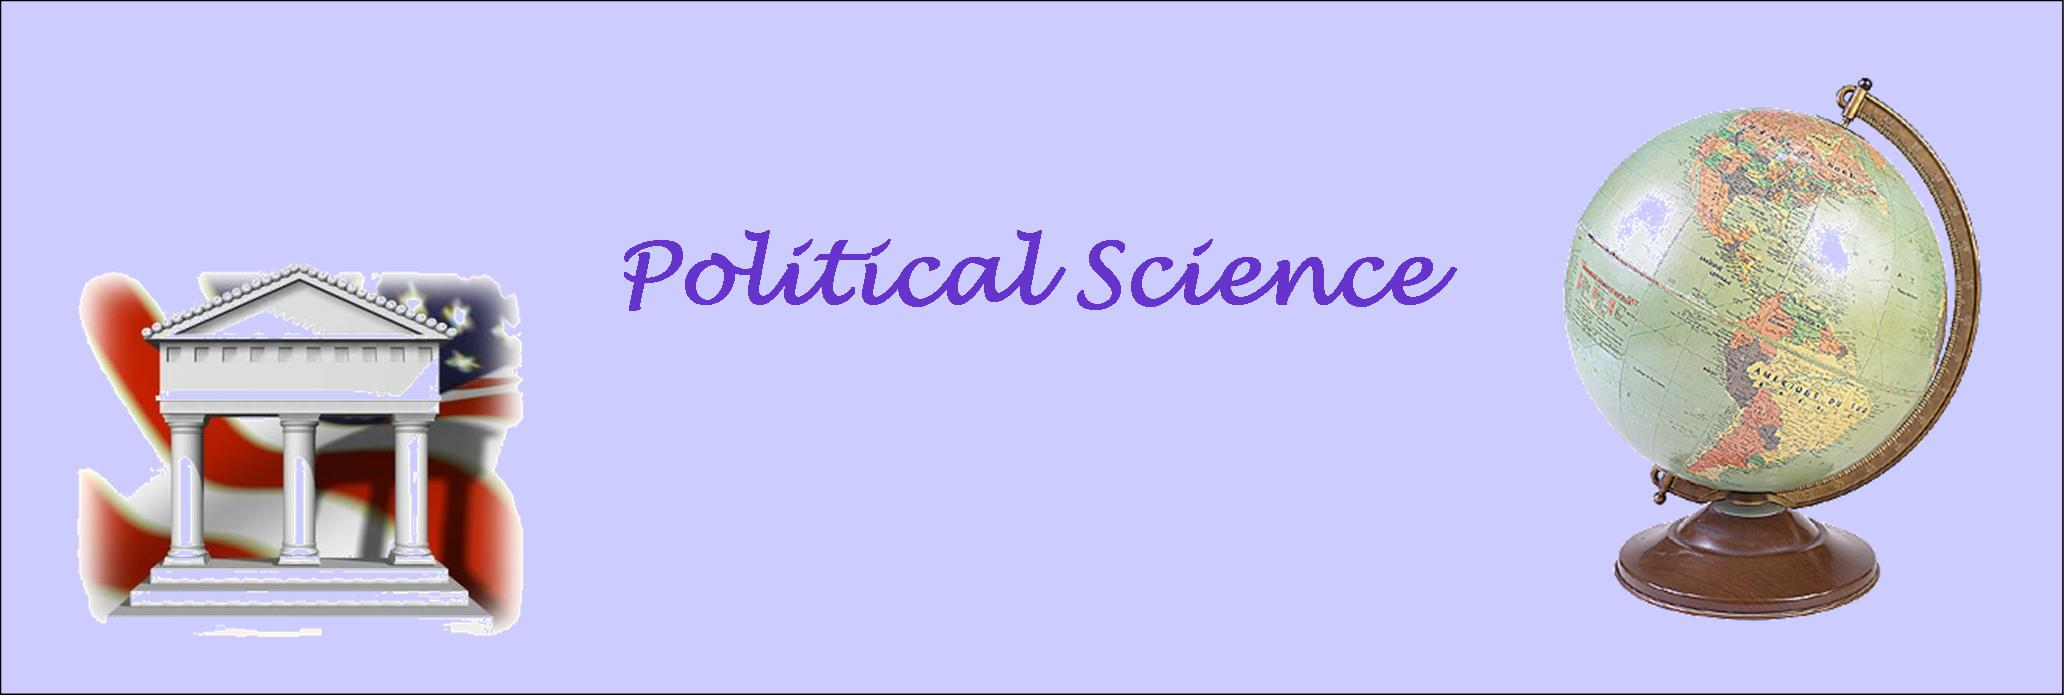 Social Science History: Time line for the history of society, science and social science